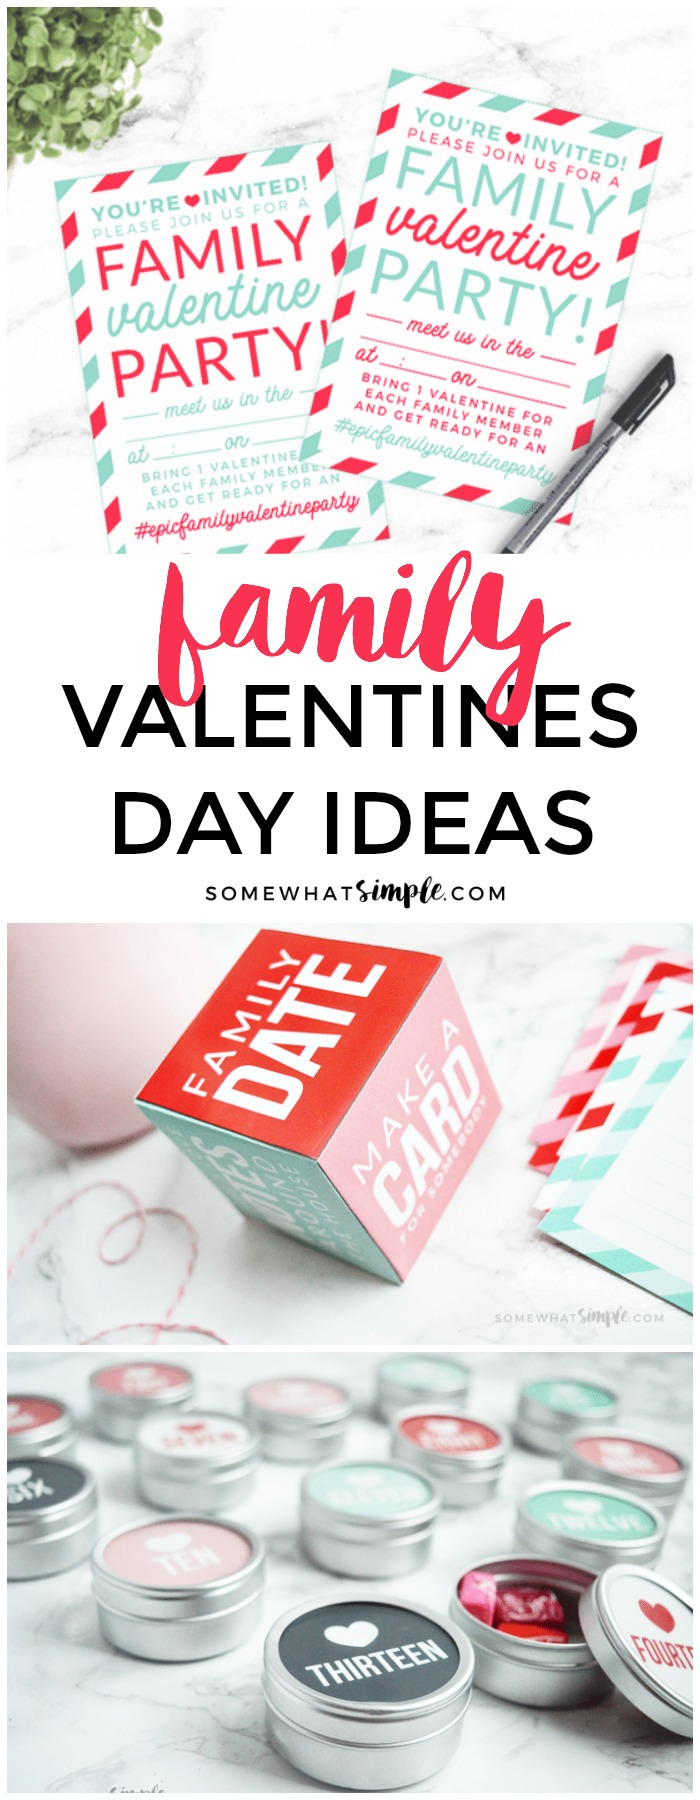 The ULTIMATE family Valentines Day ideas + darling printables to make your preparations simple and FUN!